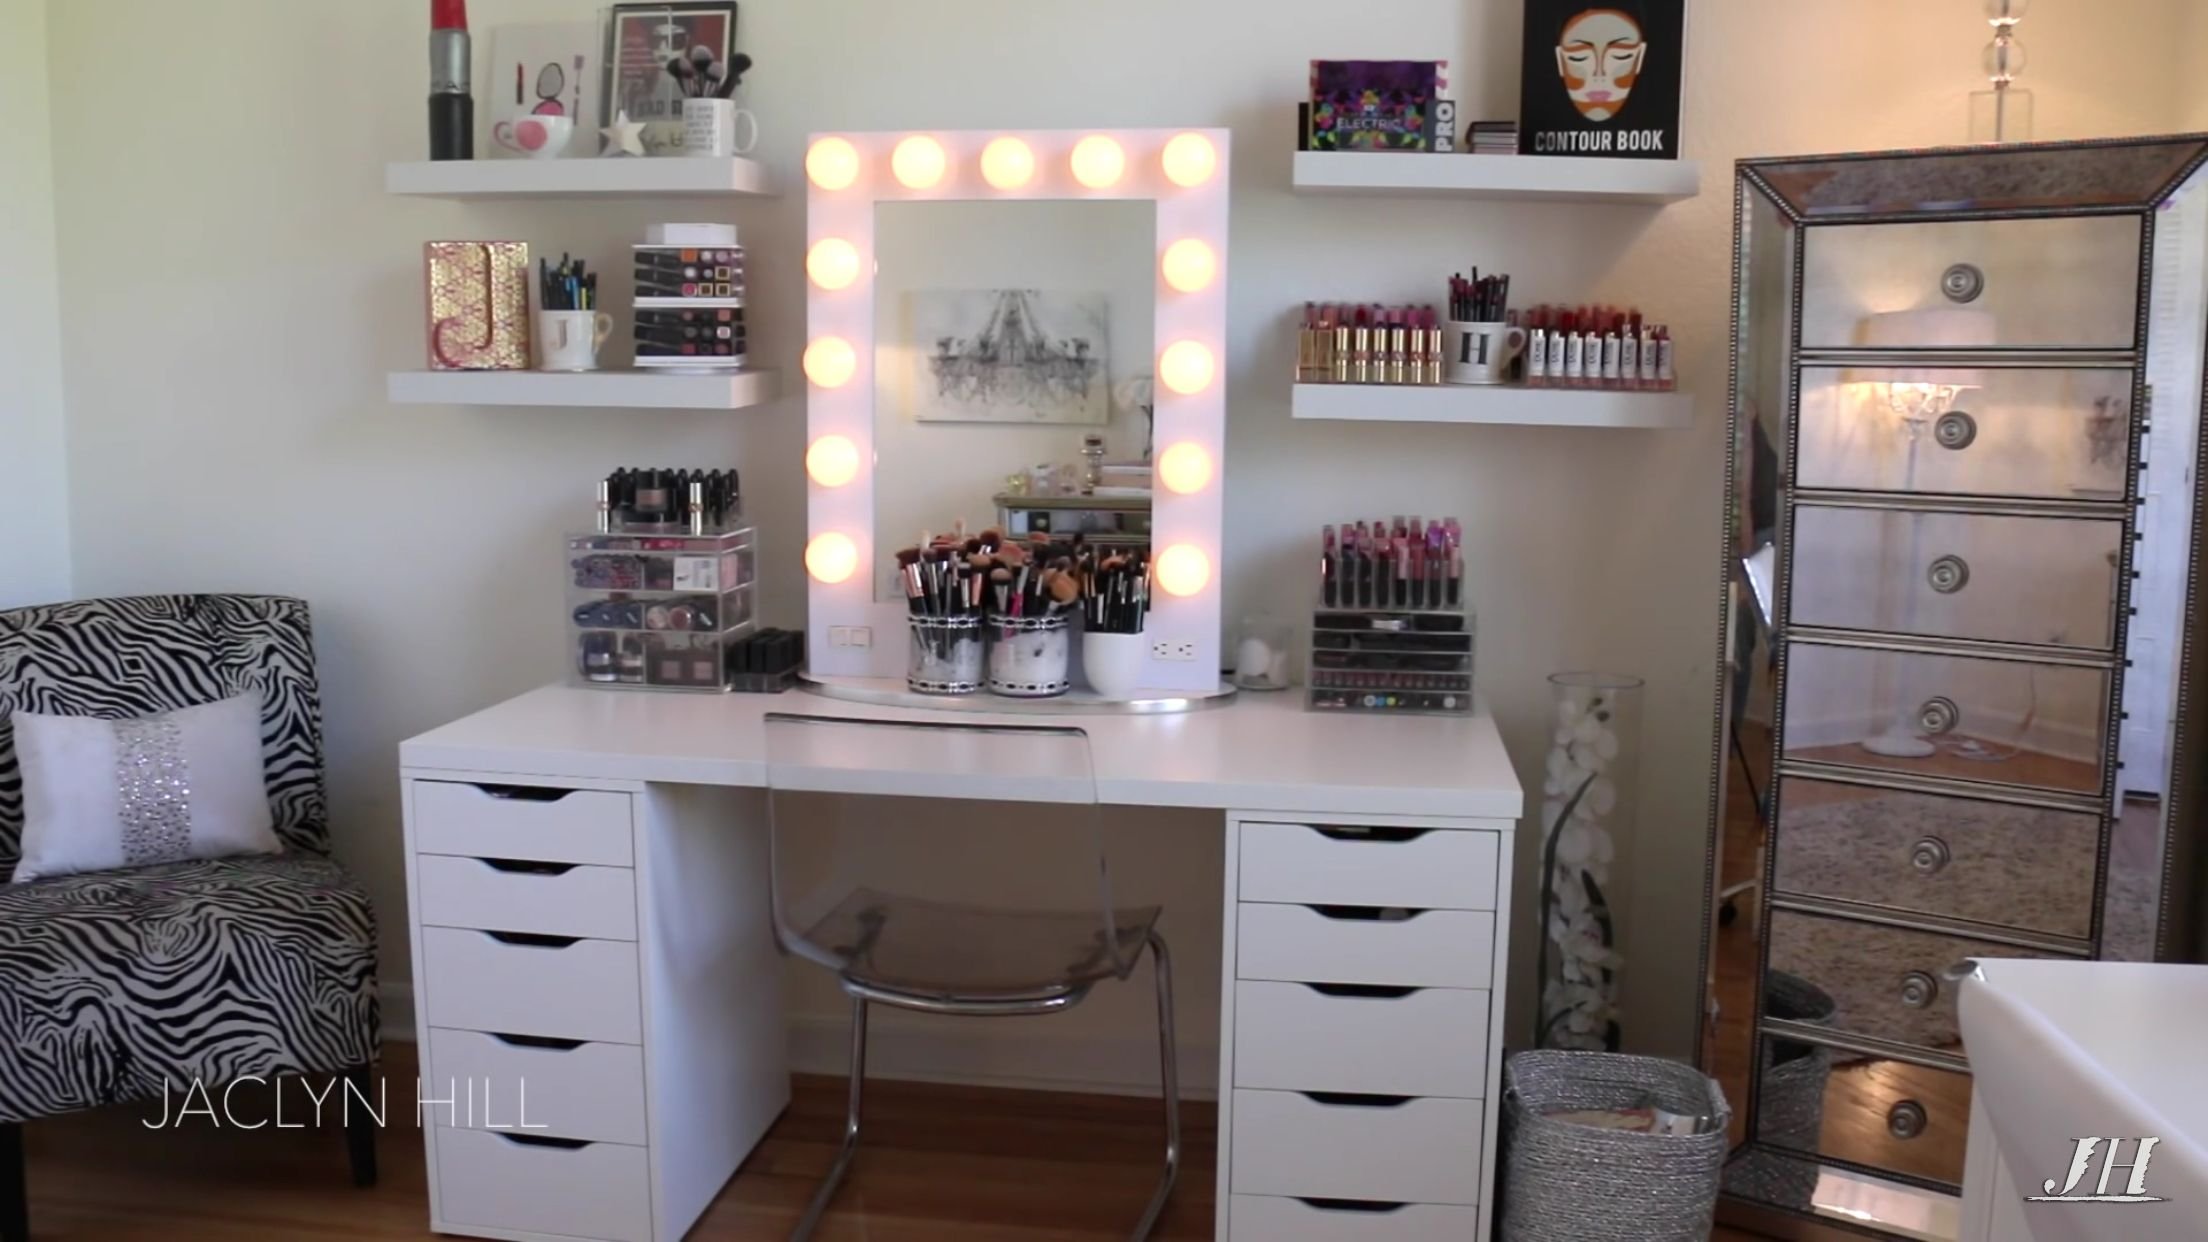 Jaclyn Hill Makeup Room